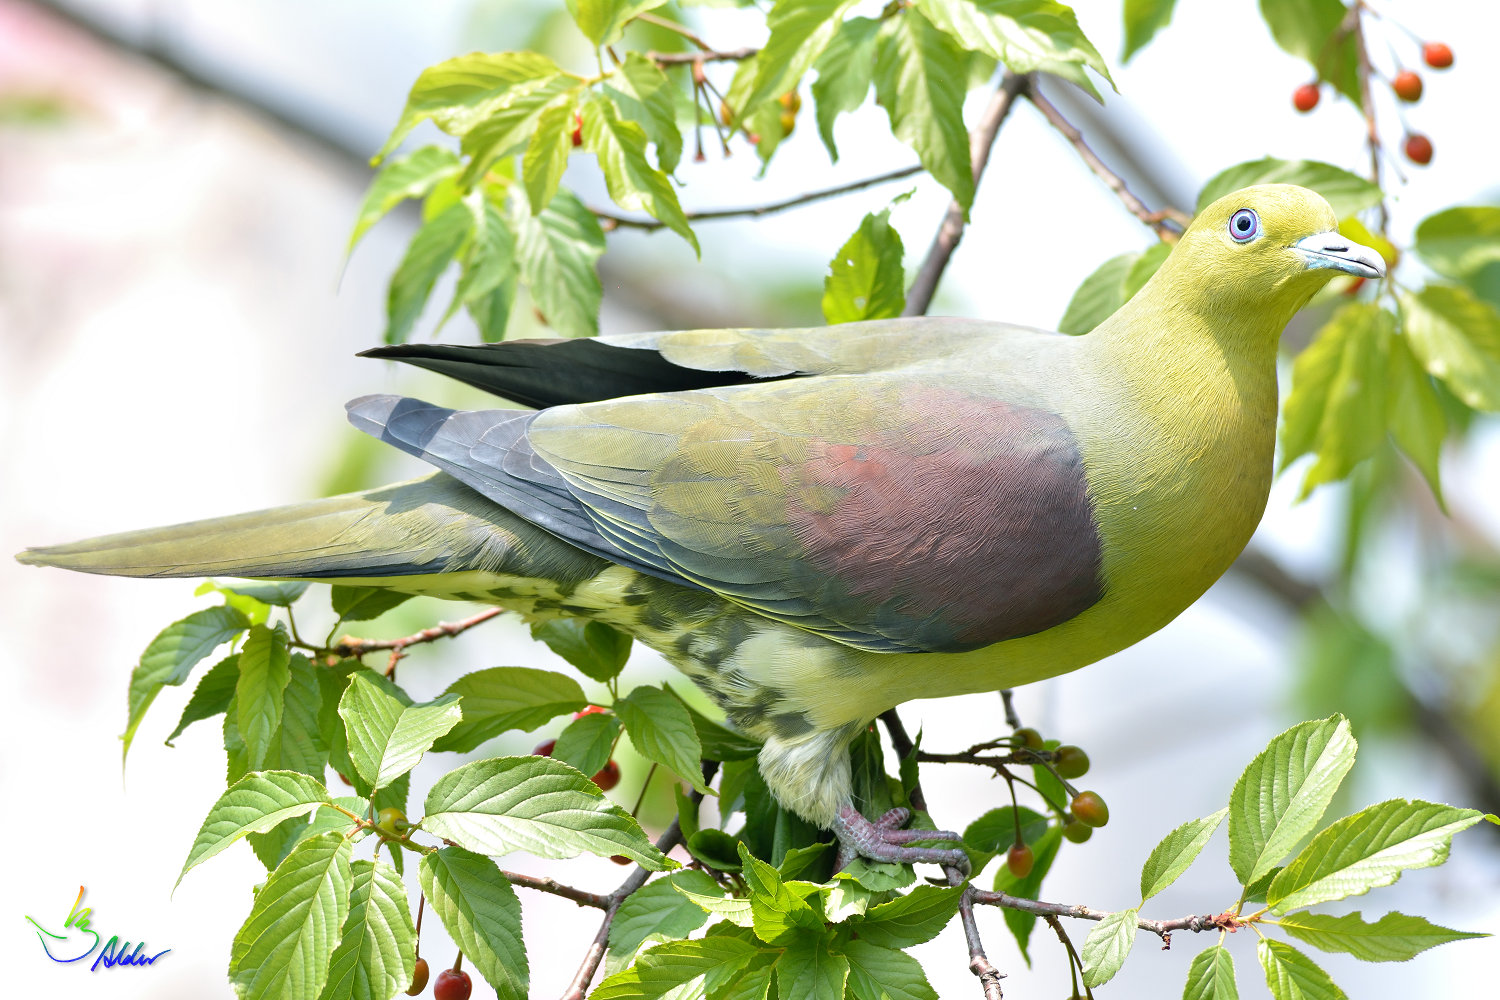 White-bellied_Green_Pigeon_6002